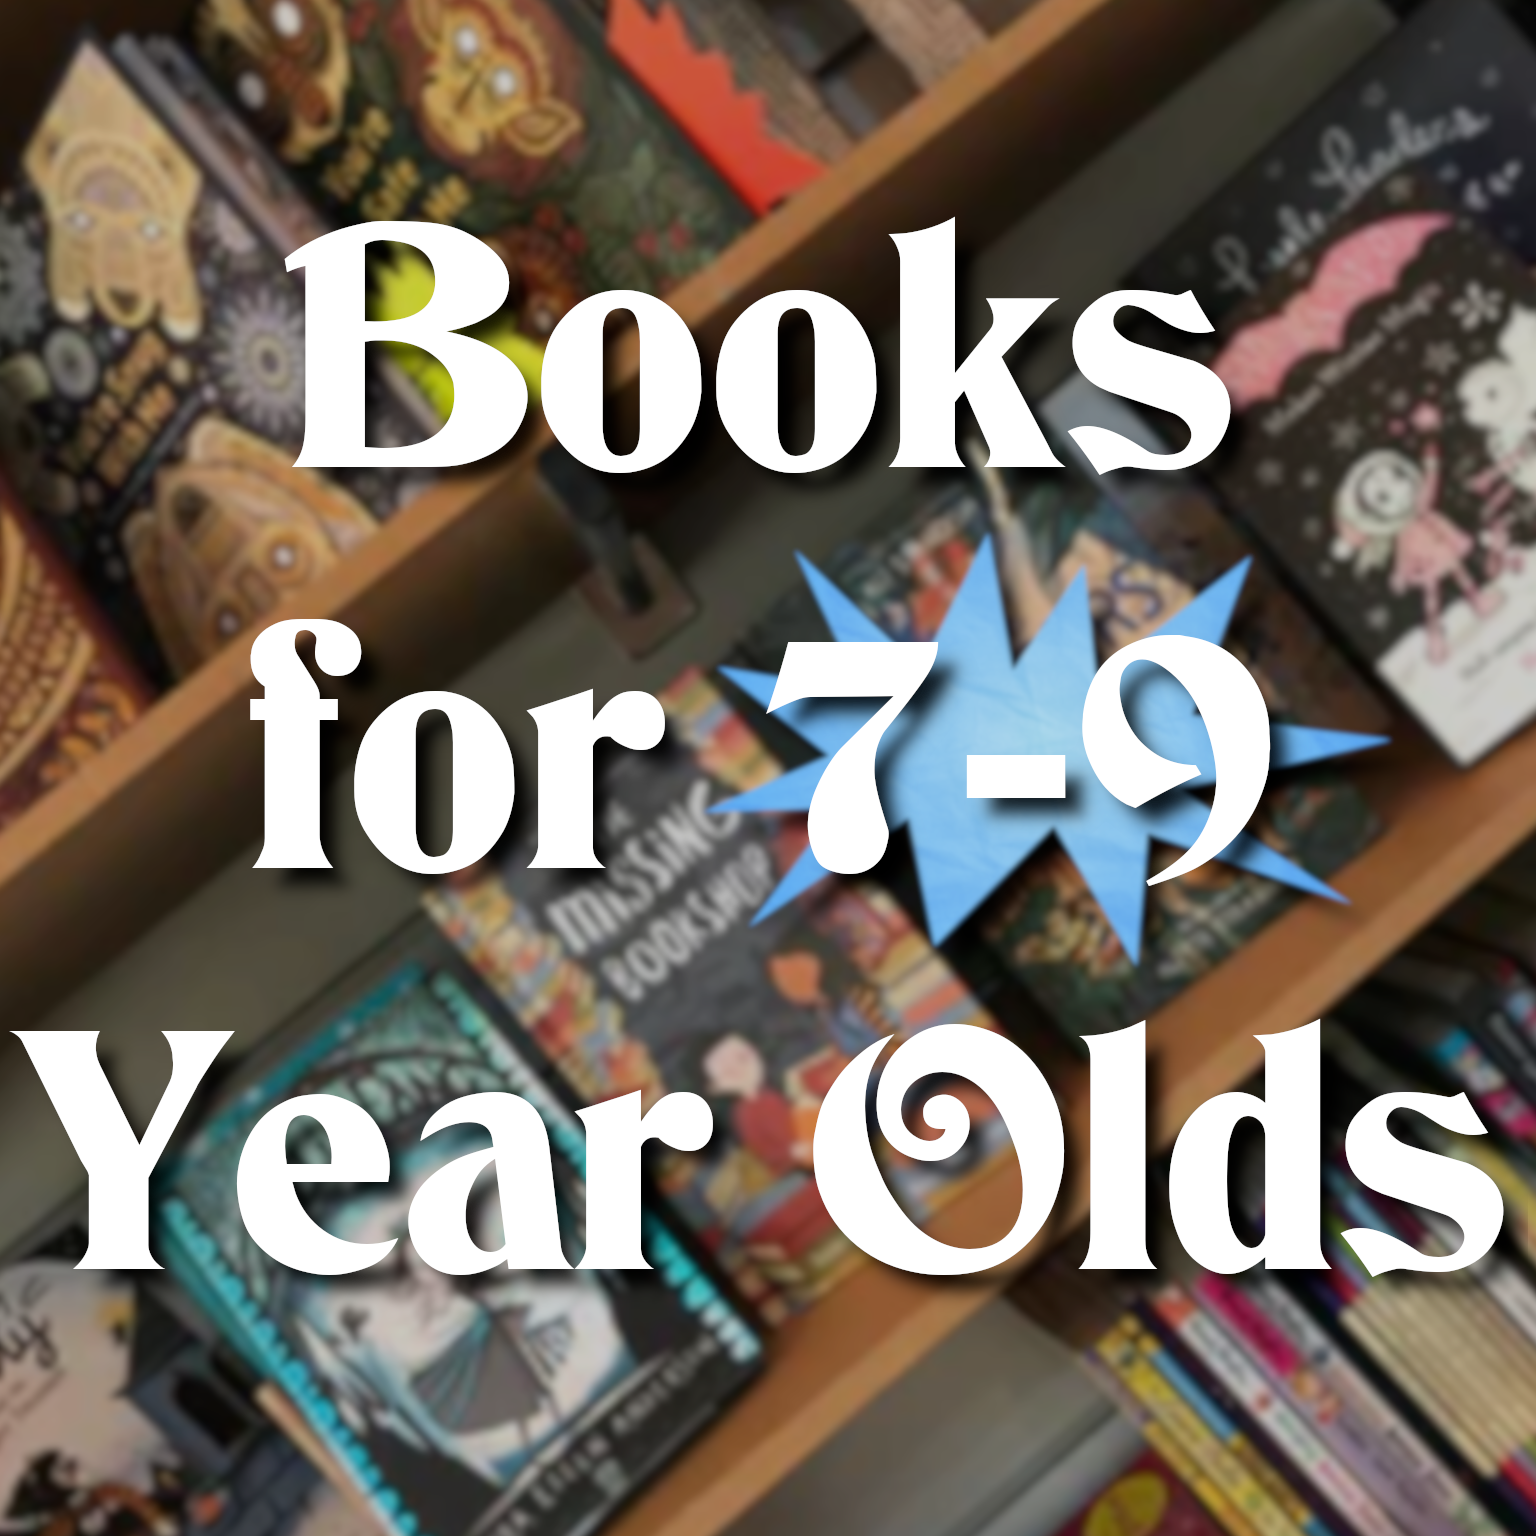 Books for 7-9year olds